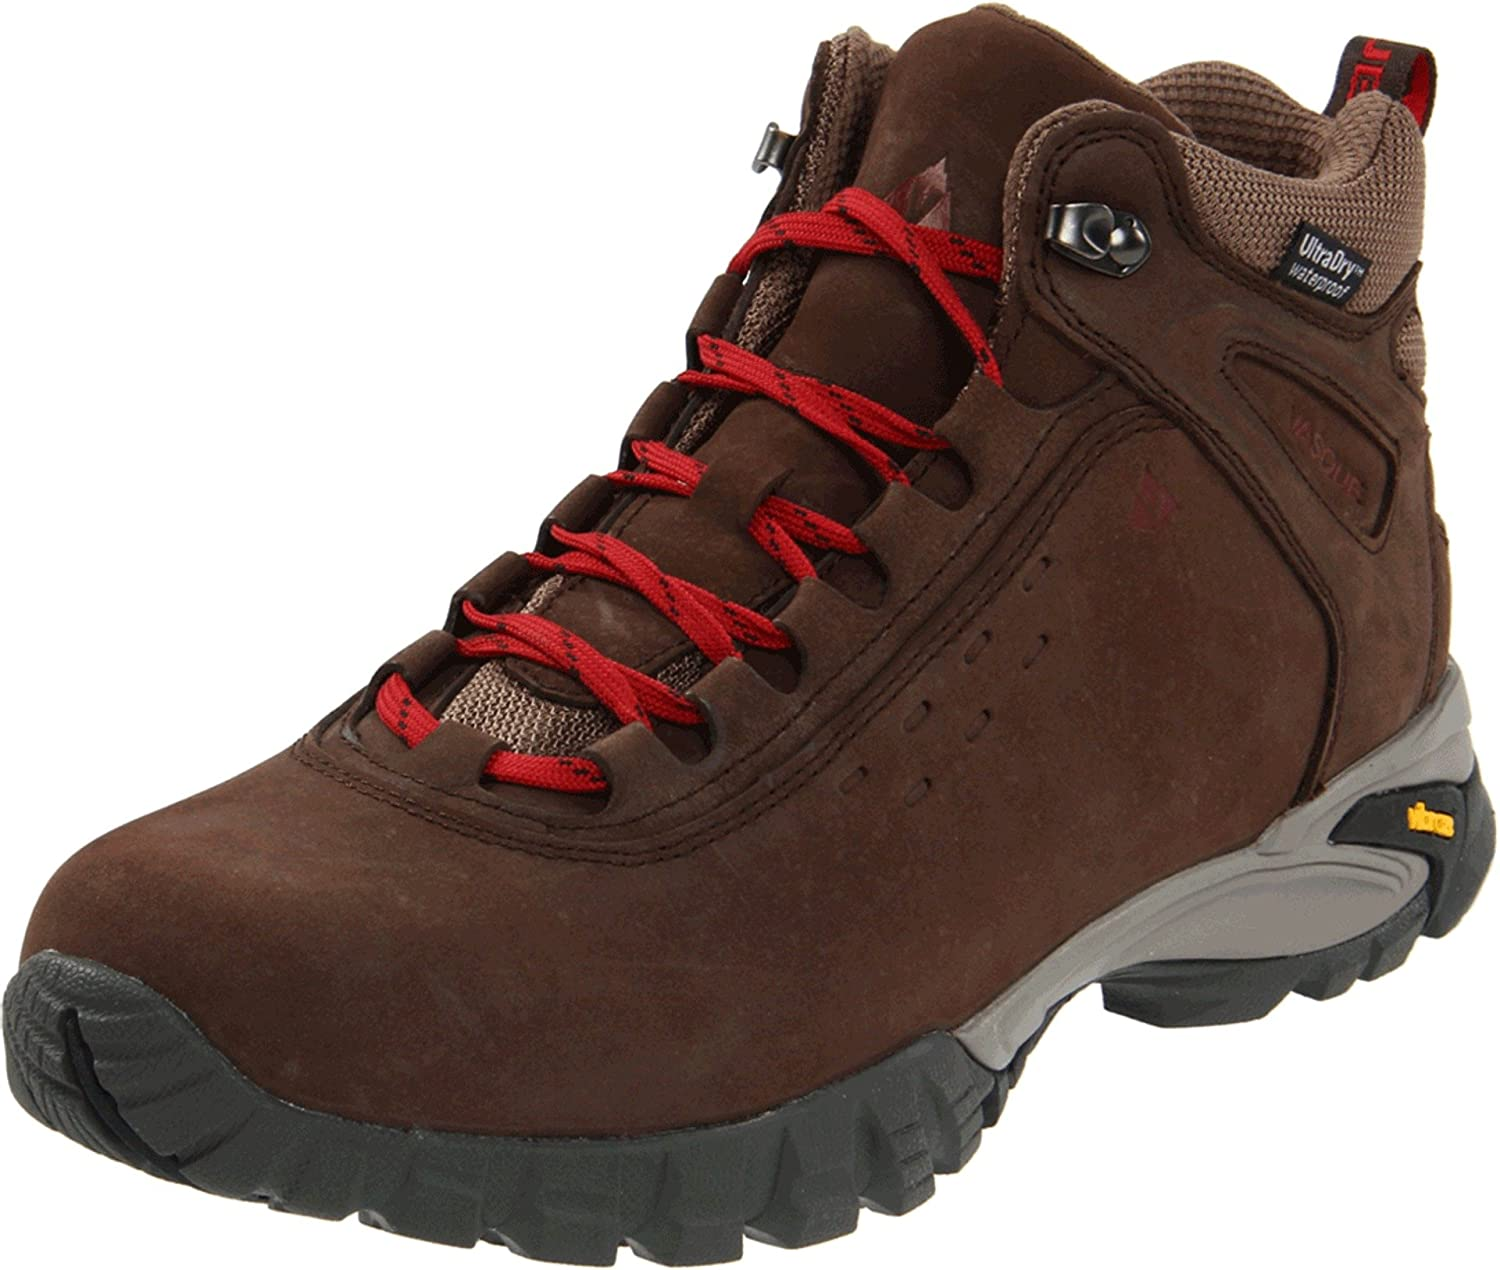 Vasque Talus AT Ultradry Hiking Boots Men's